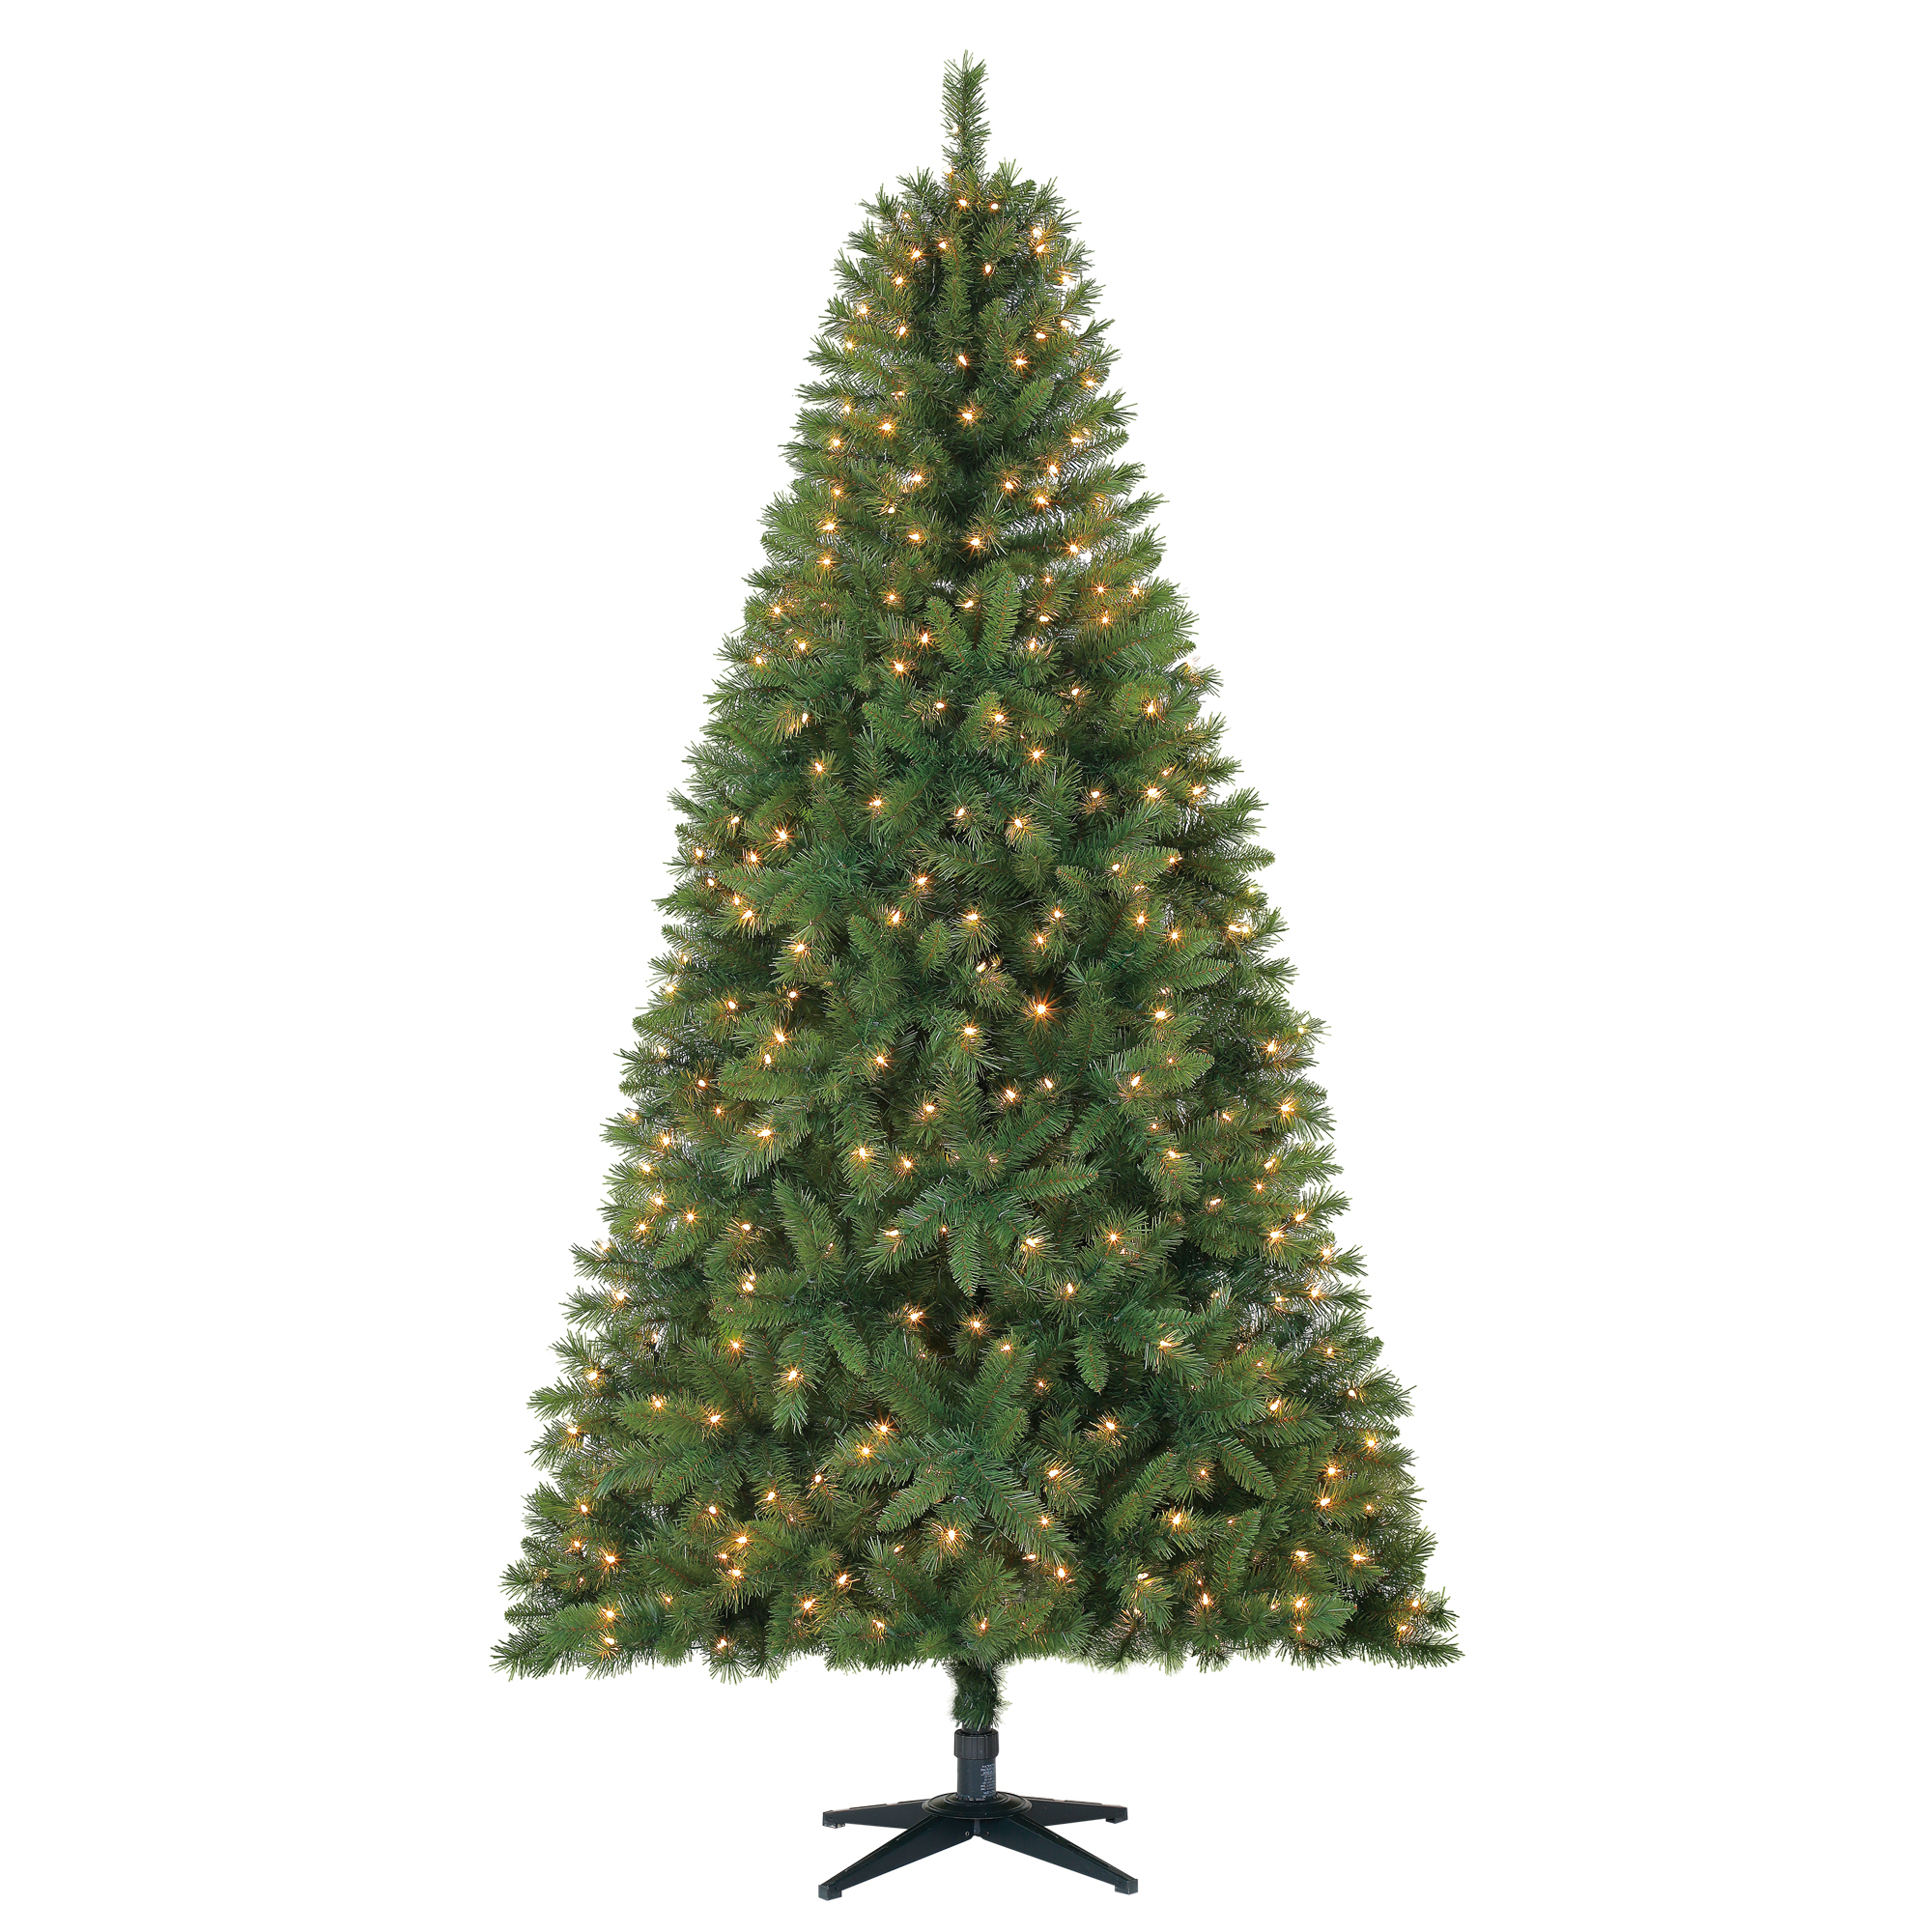 Holiday Time 7.5ft Pre-Lit Kennedy Fir Artificial Christmas Tree with 450 Clear Lights - Green